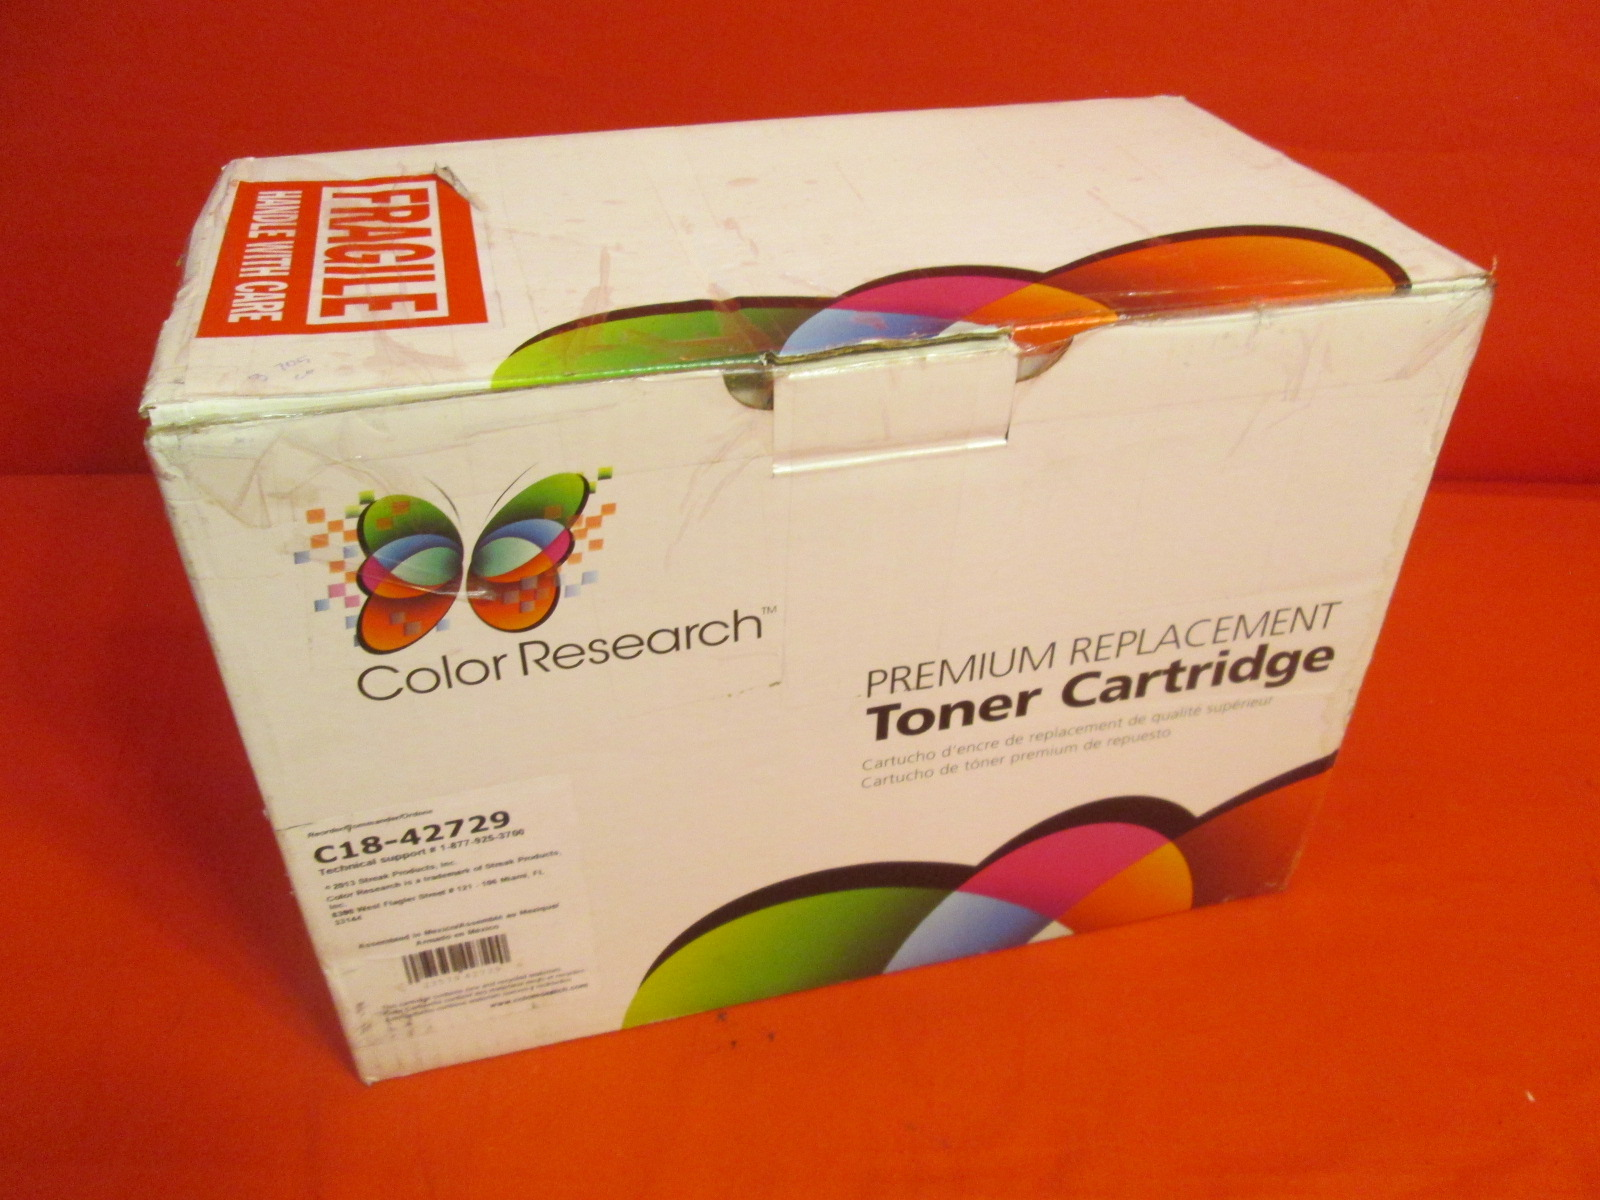 Color Research Replacement HP C4096A HP 96A Toner Cartridge